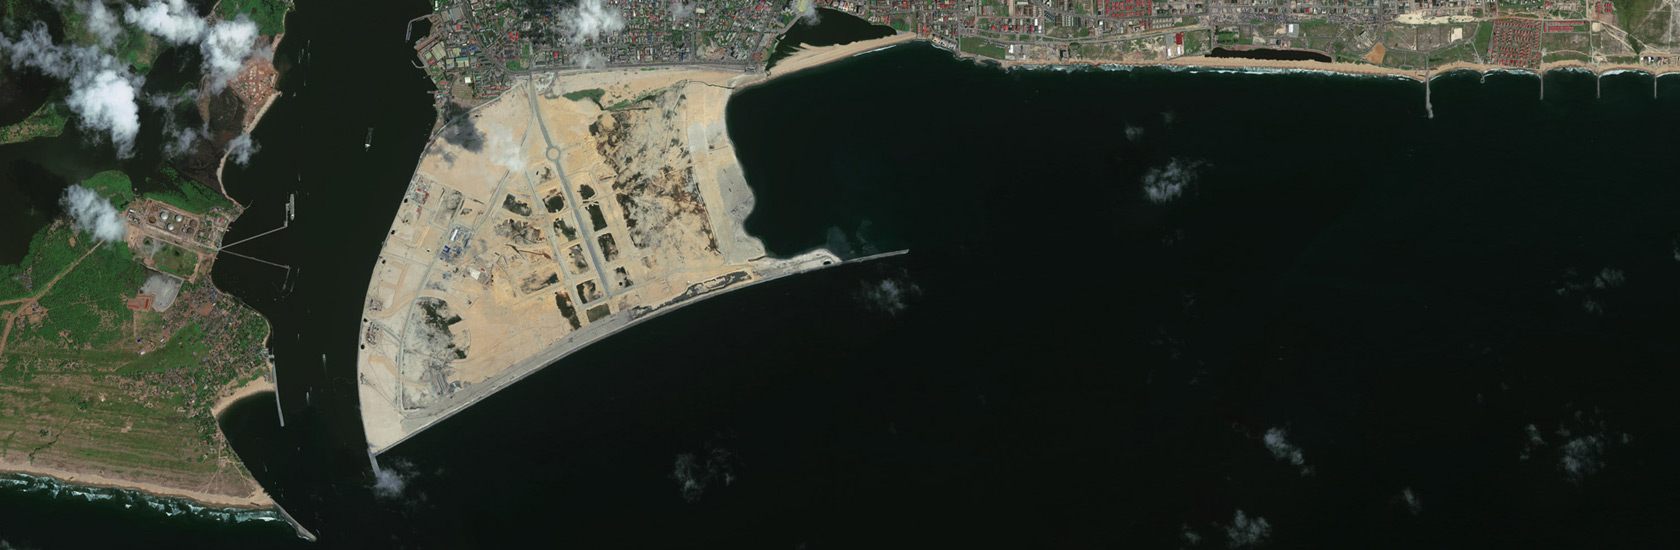 eko-atlantic-geoeye